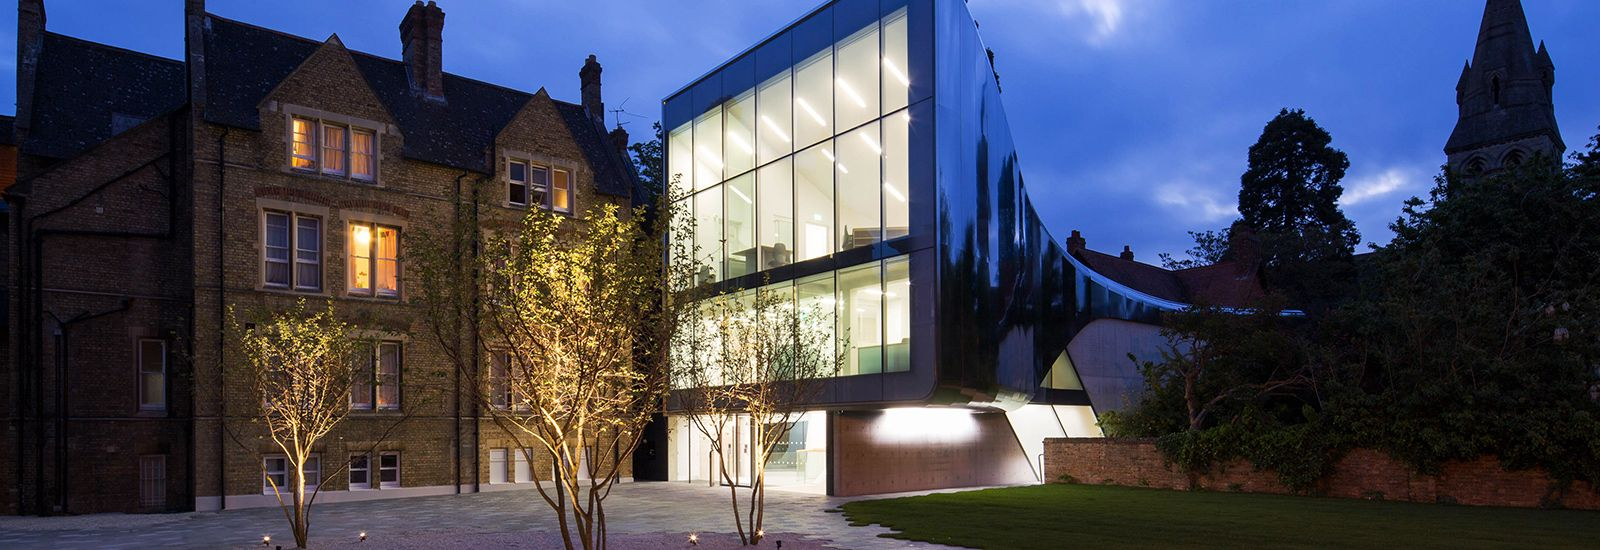 The new Investcorp Building in St Antony's College by Zaha Hadid Architects